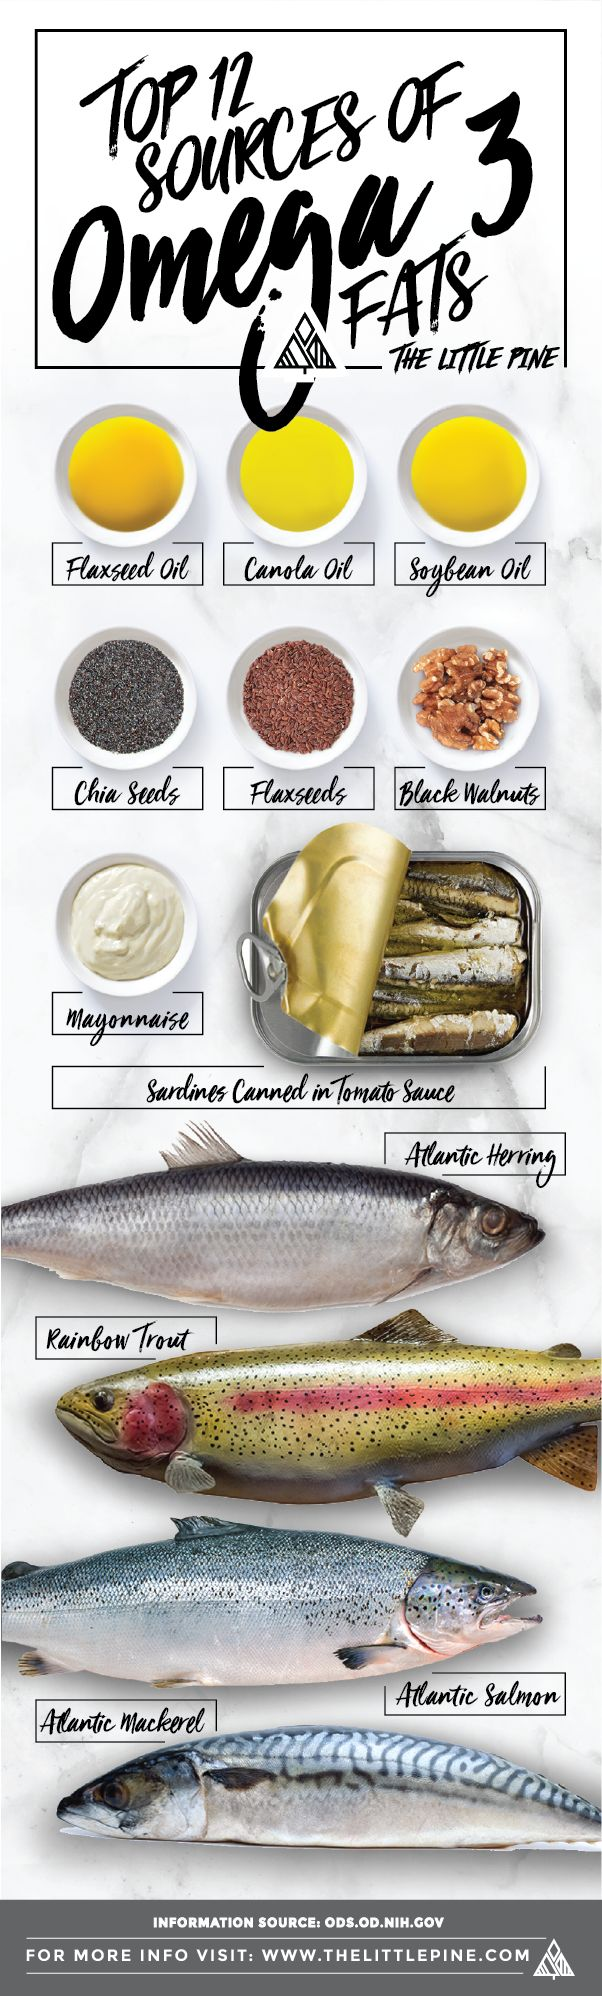 Best 25 omega 3 foods ideas on pinterest omega 3 for Healthiest fish list